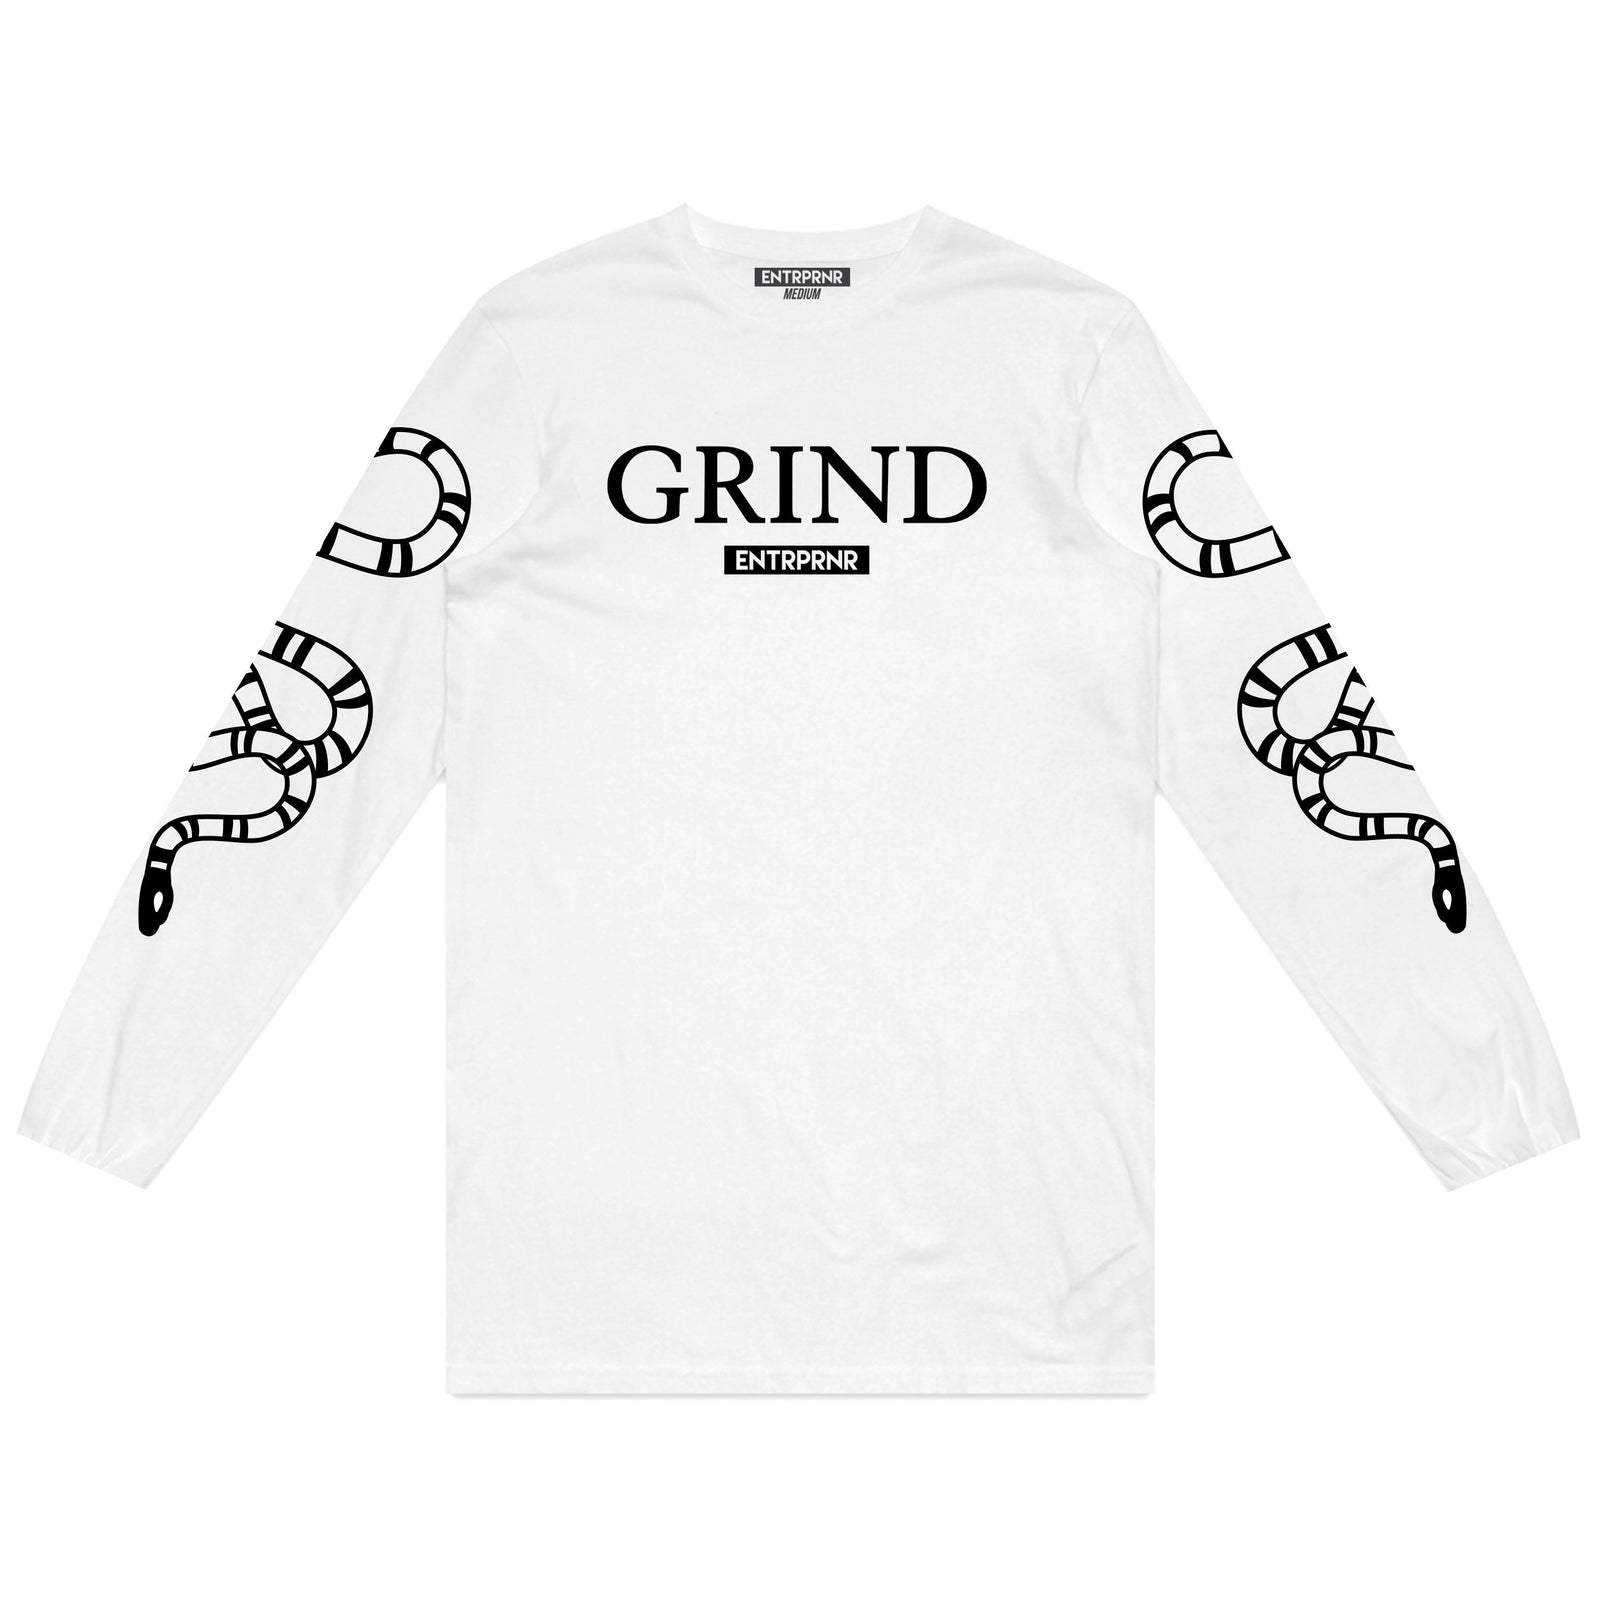 ENTRPRNR Grind Long Sleeve - White - ENTRPRNR® | The Entrepreneur's Clothing Brand. | Stagnancy is the Enemy. Action is King.